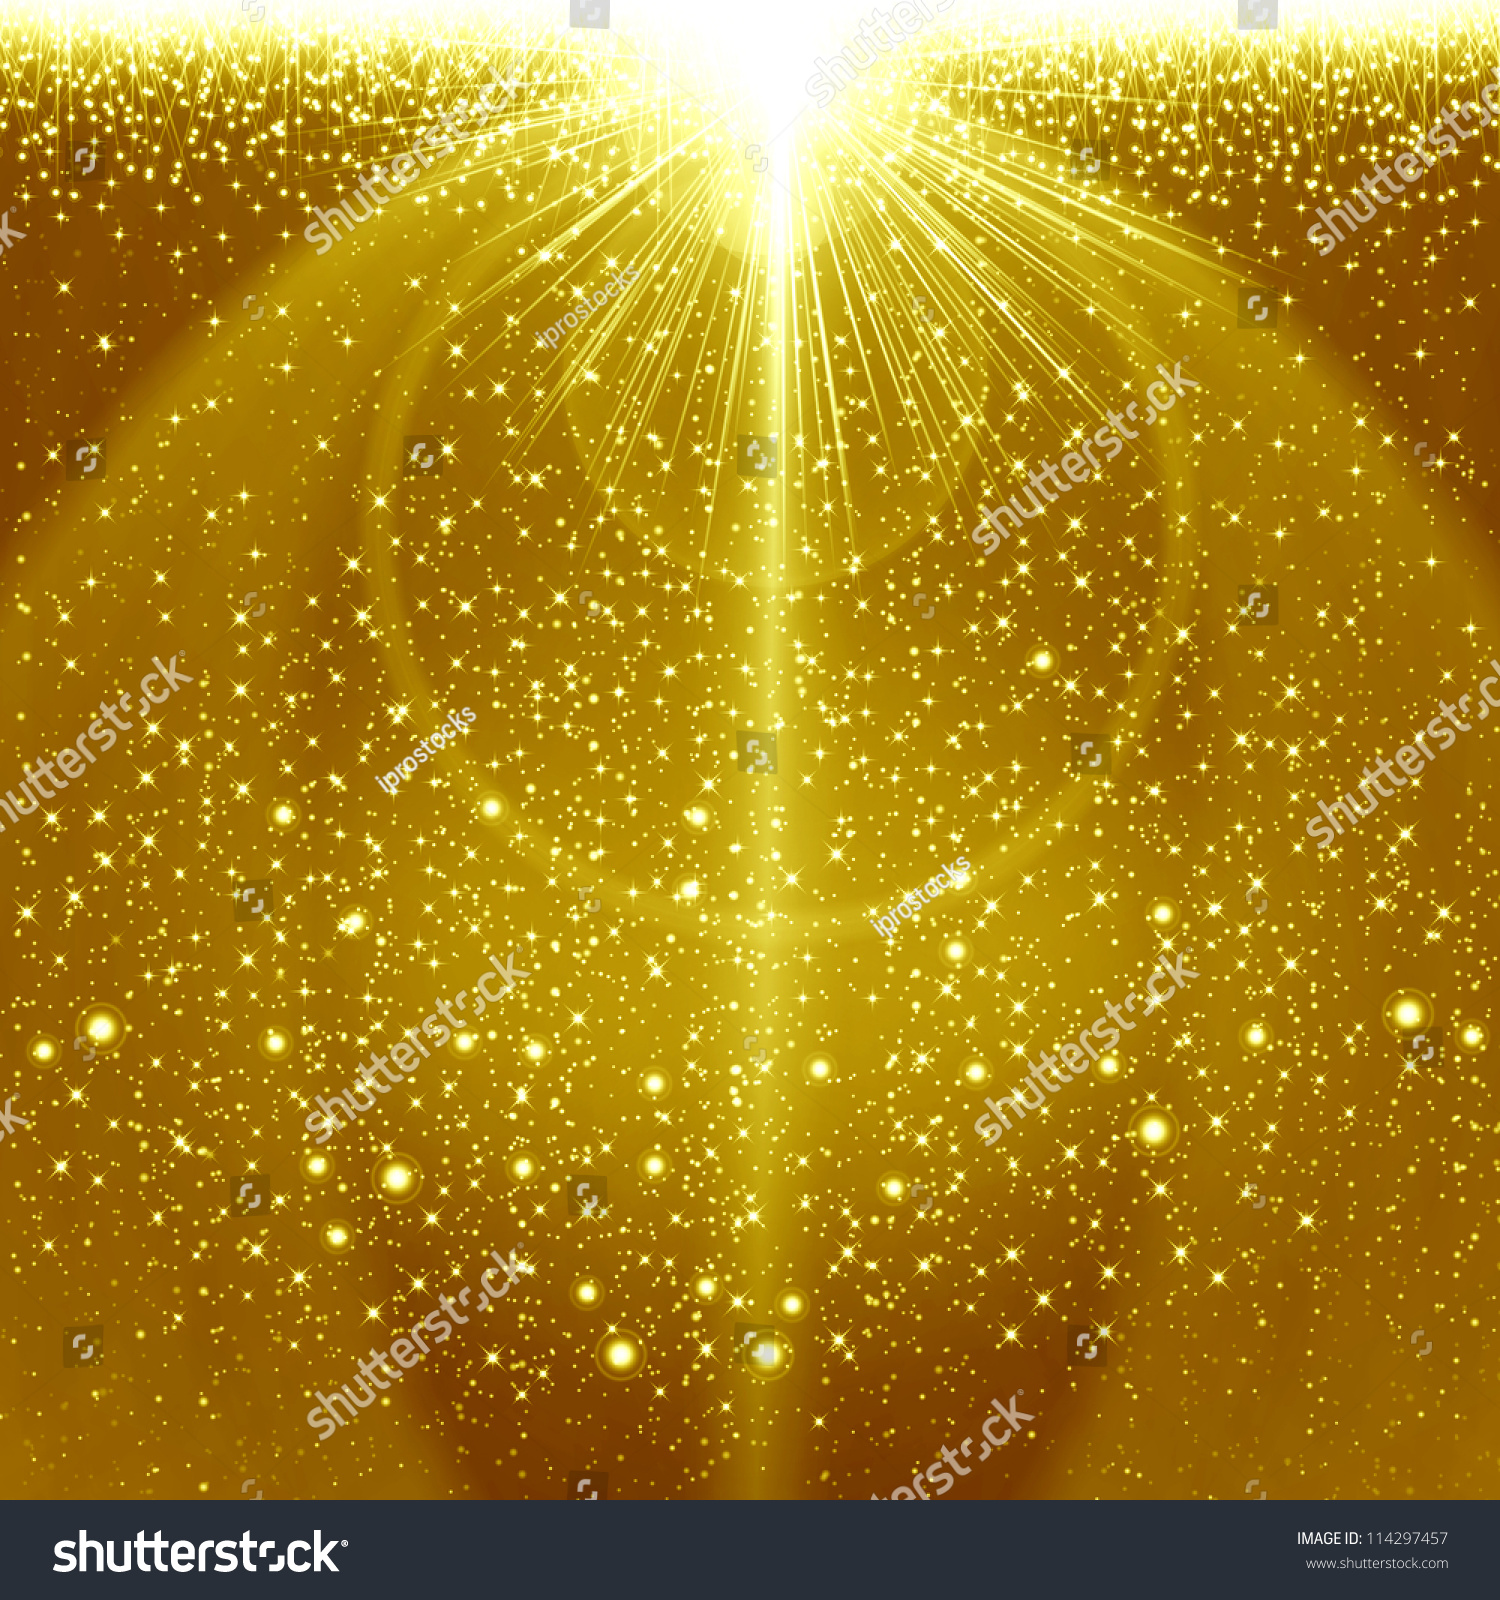 golden christmas background with - photo #33